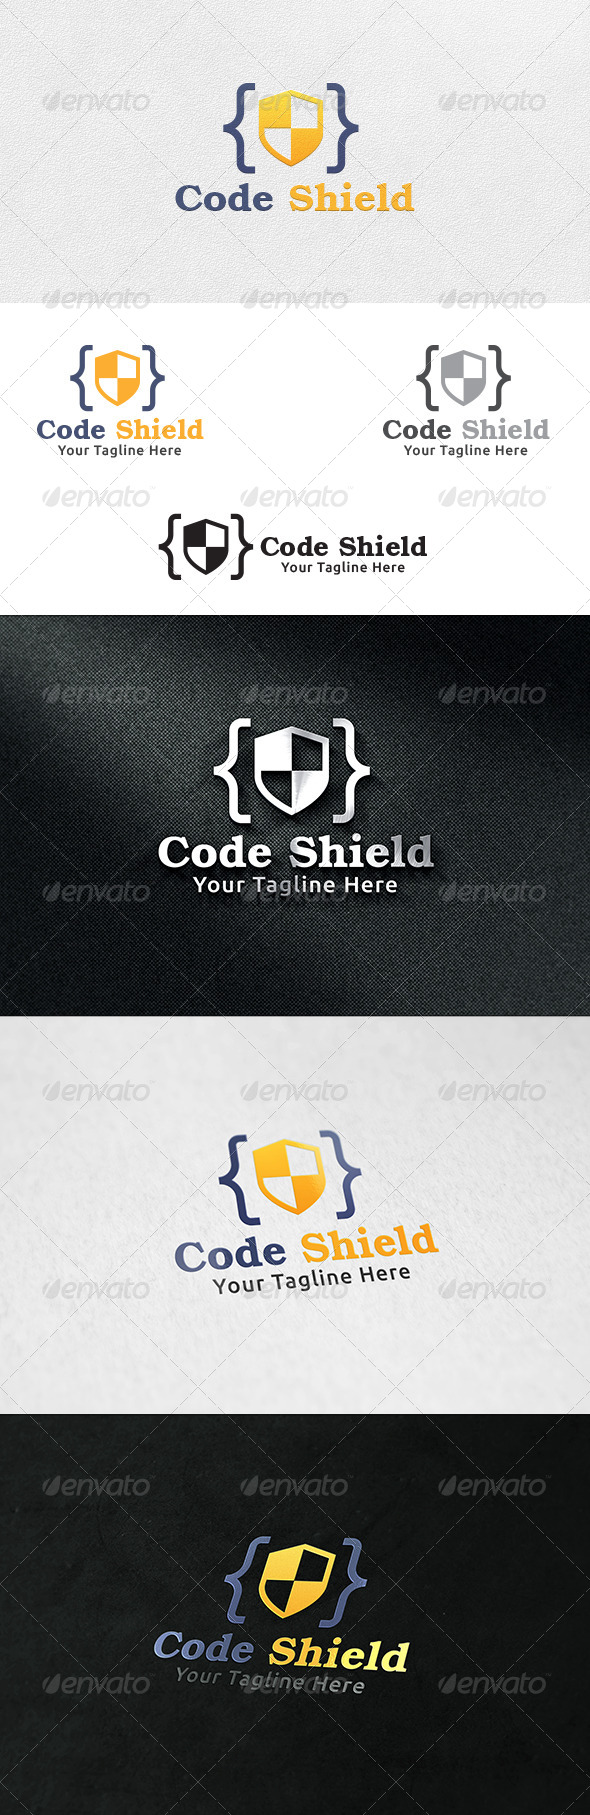 Code Shield - Logo Template - Crests Logo Templates